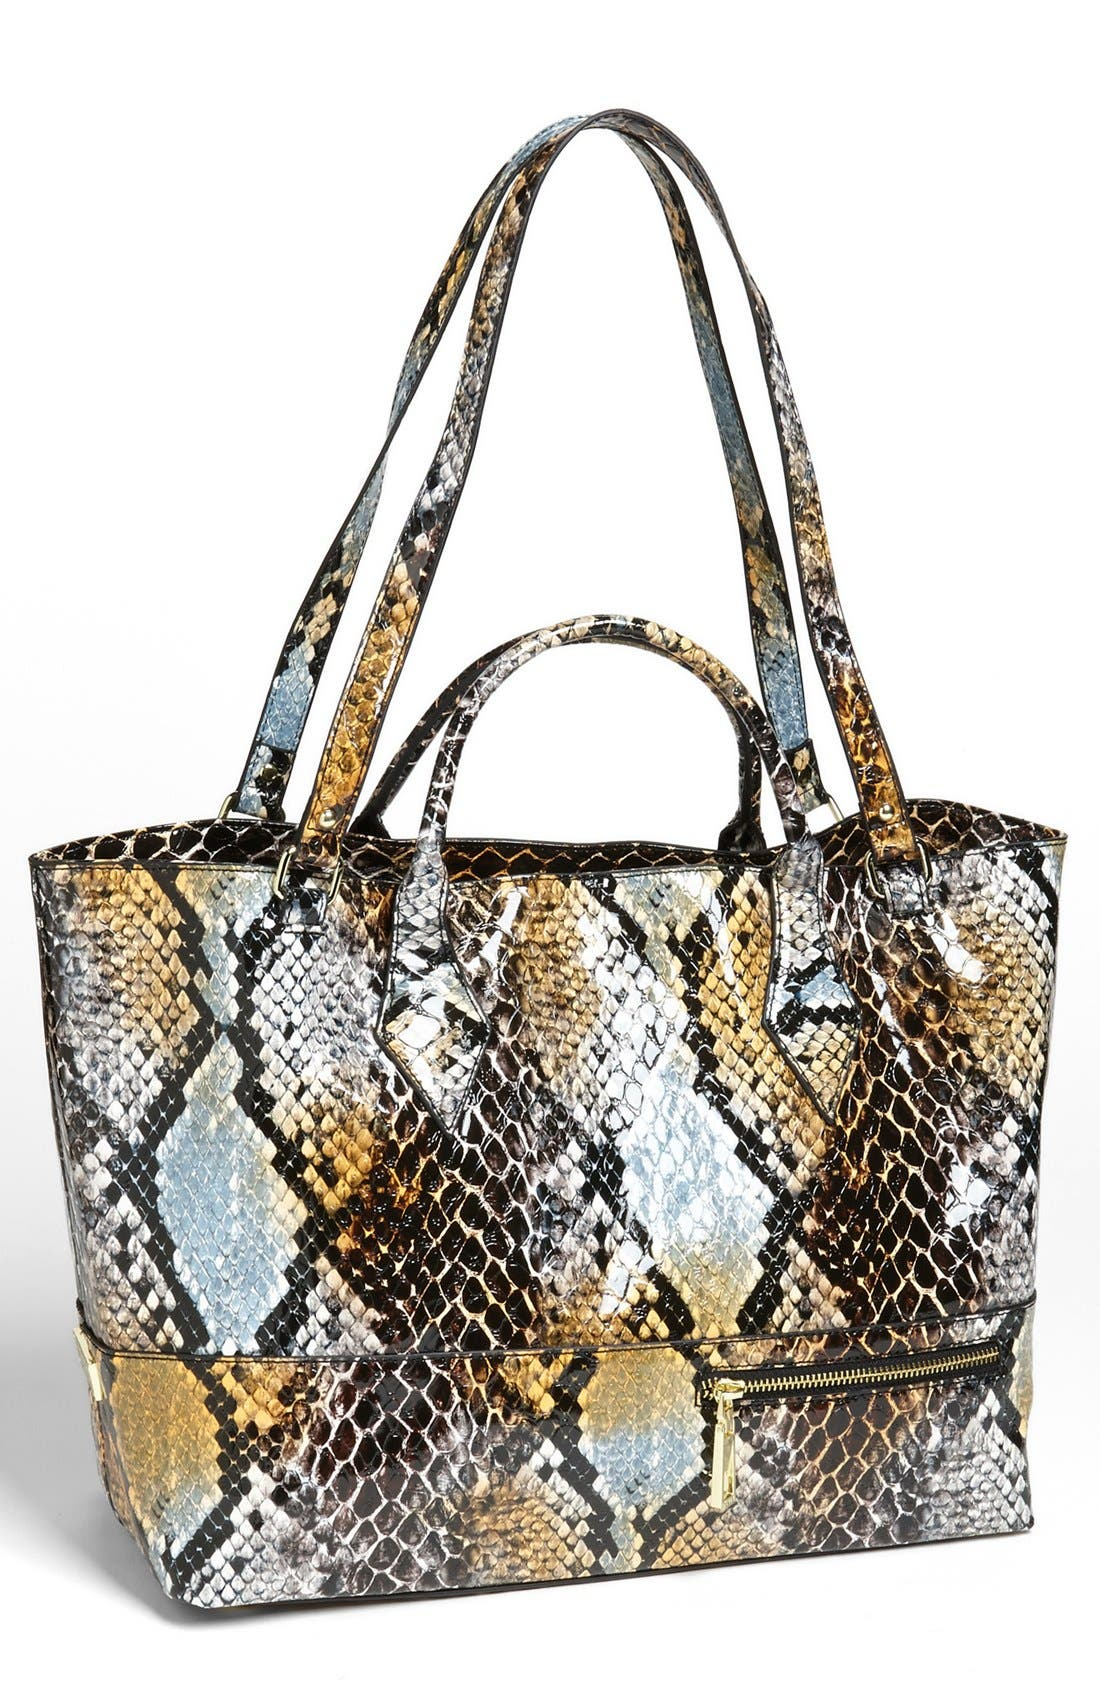 Alternate Image 1 Selected - Steven by Steve Madden 'Syria' Tote